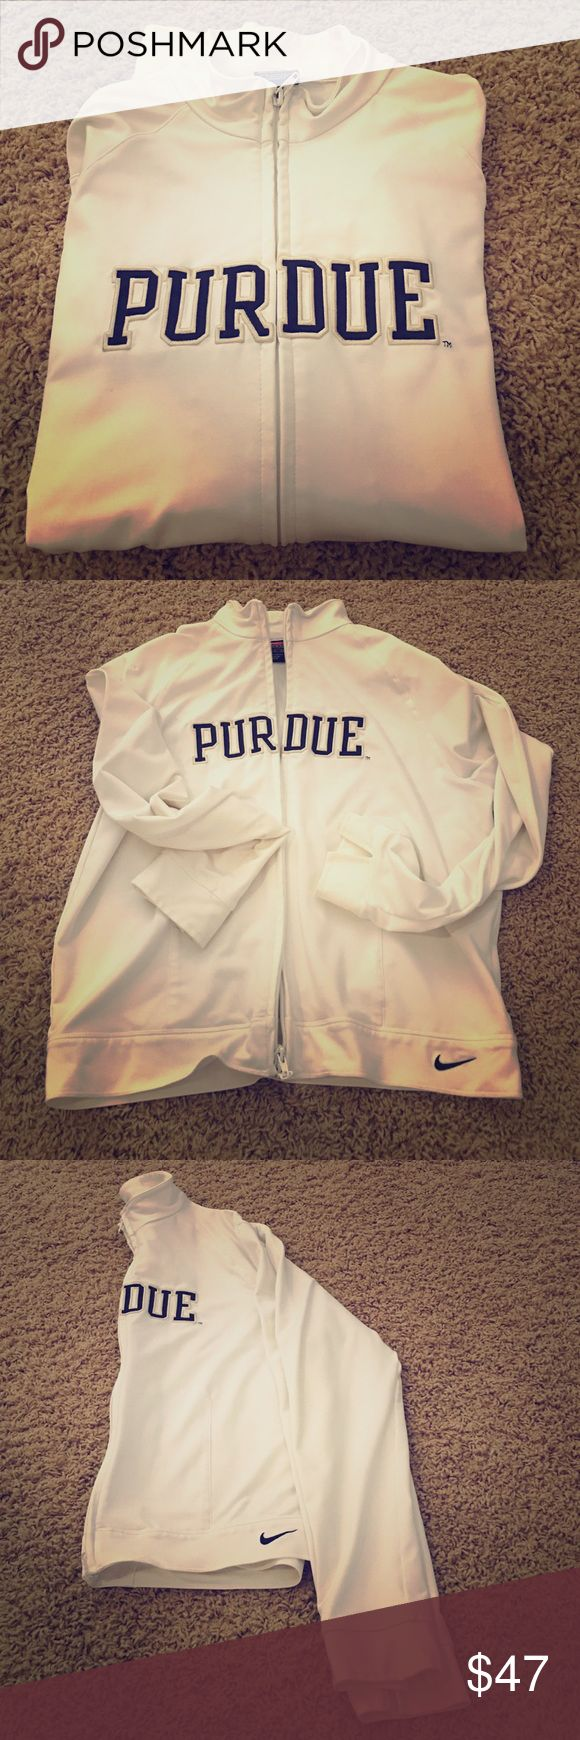 White Nike zip up White Nike Purdue zip up. Gently used and in great condition. Double zipper; meaning it zips up and down both ways. Official university gear. Nike Team Jackets & Coats